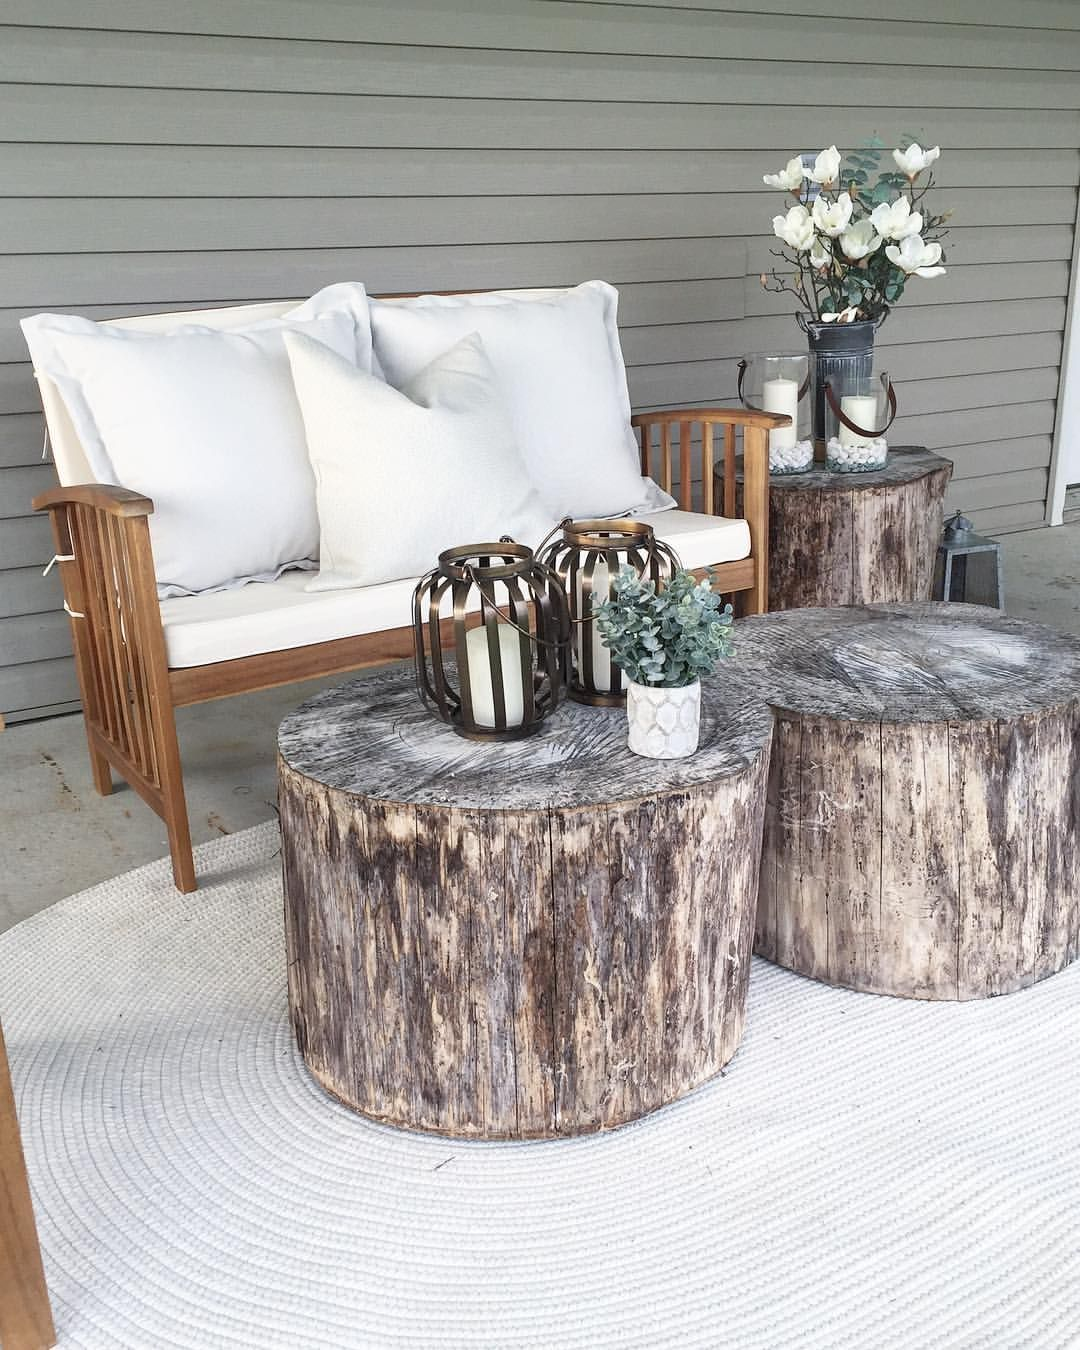 Back Porch Design Ideas: Rustic & Raw Touches For A Simple Back Porch